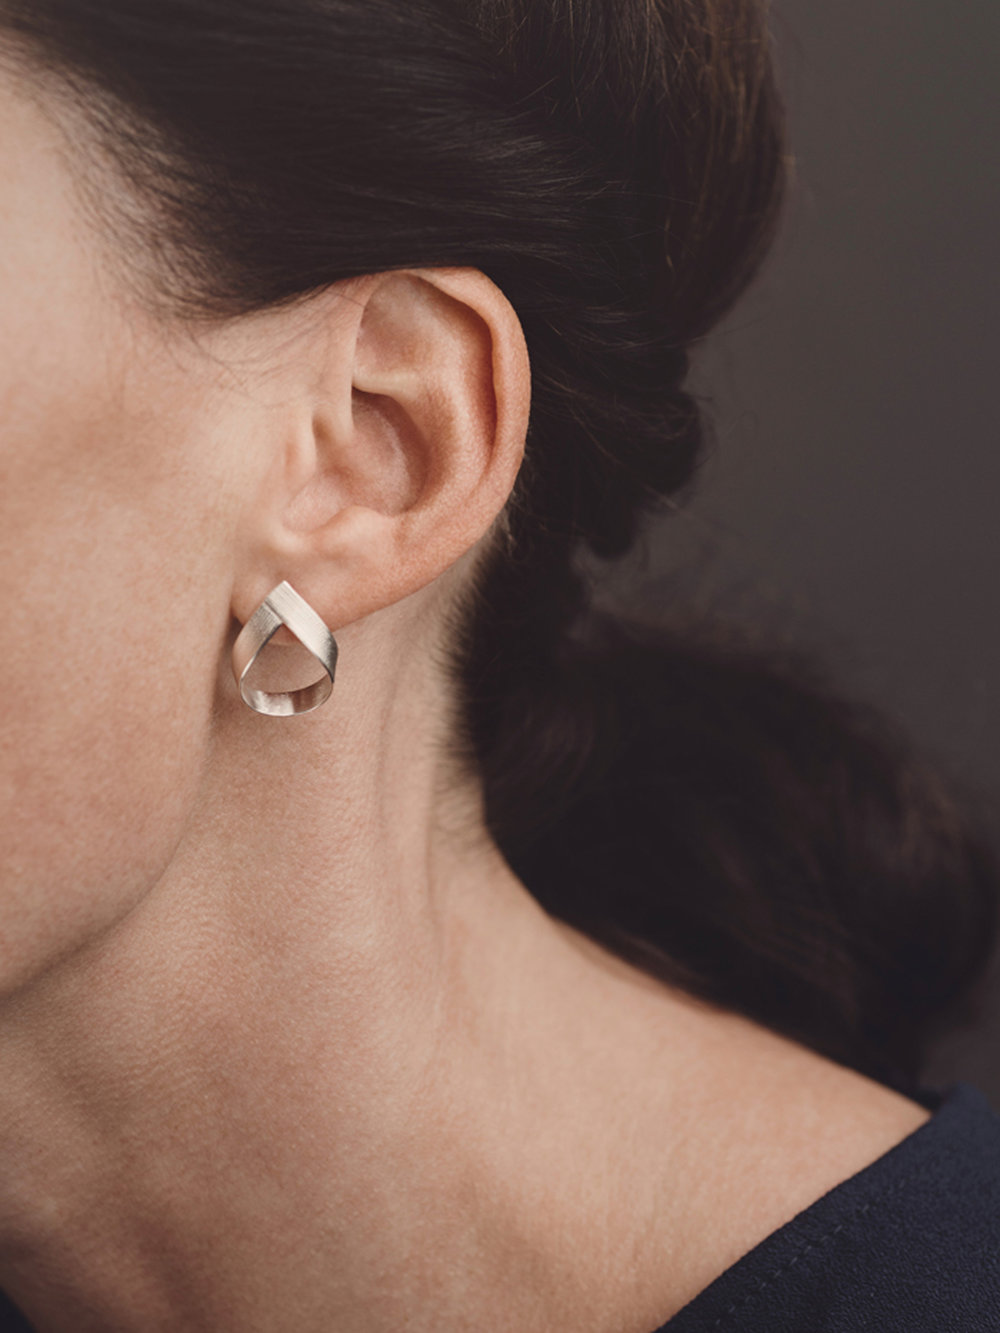 Band-Ohrstecker, klein in 925 Silber mit Seidenstruktur/ Band-earrings, small in sterling silver with silk structure